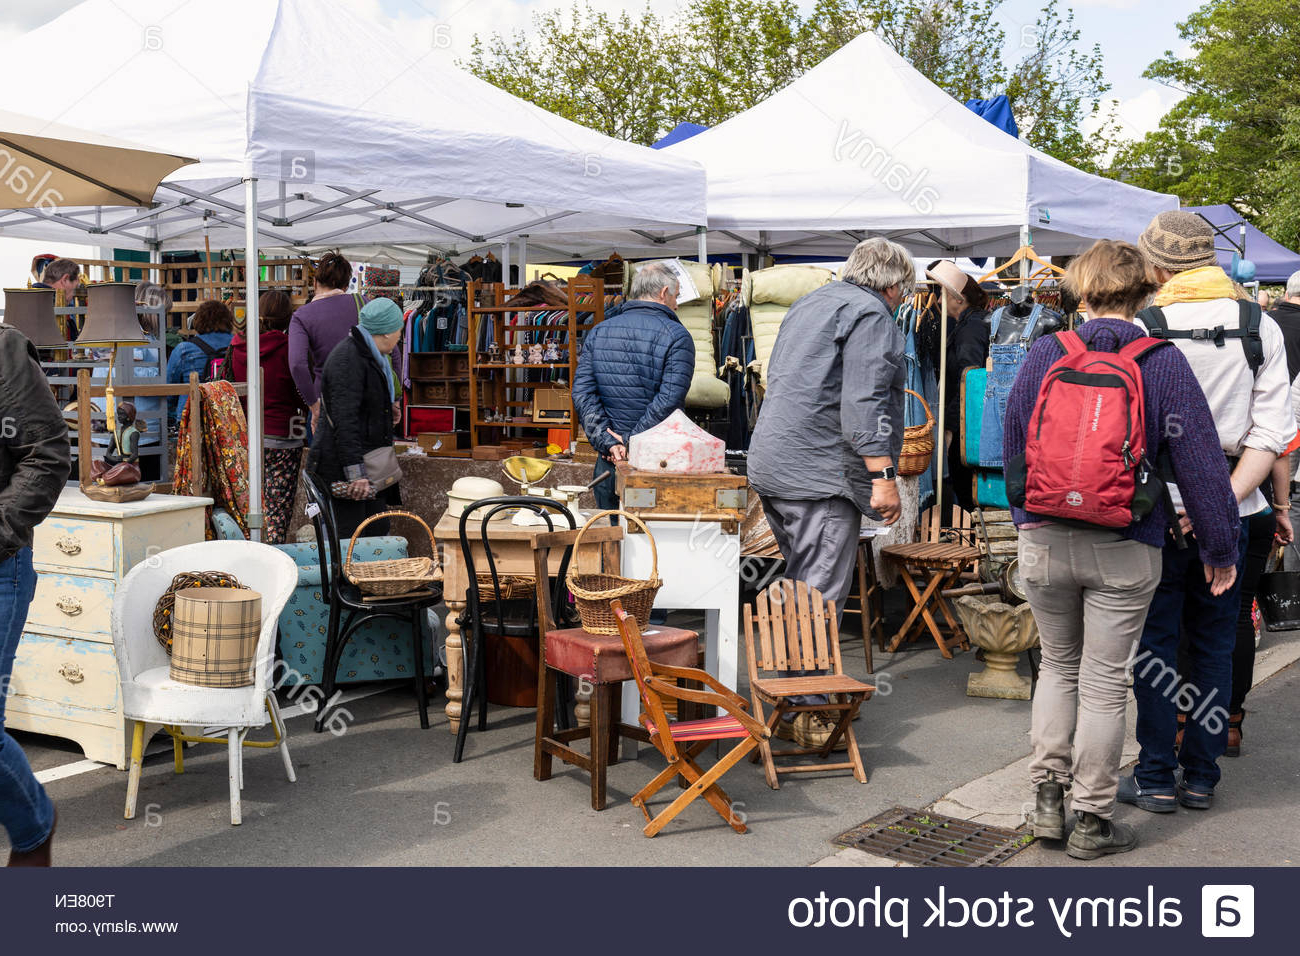 Frome Market Umbrellas Intended For Favorite Market Yard Stock Photos & Market Yard Stock Images – Alamy (View 6 of 20)